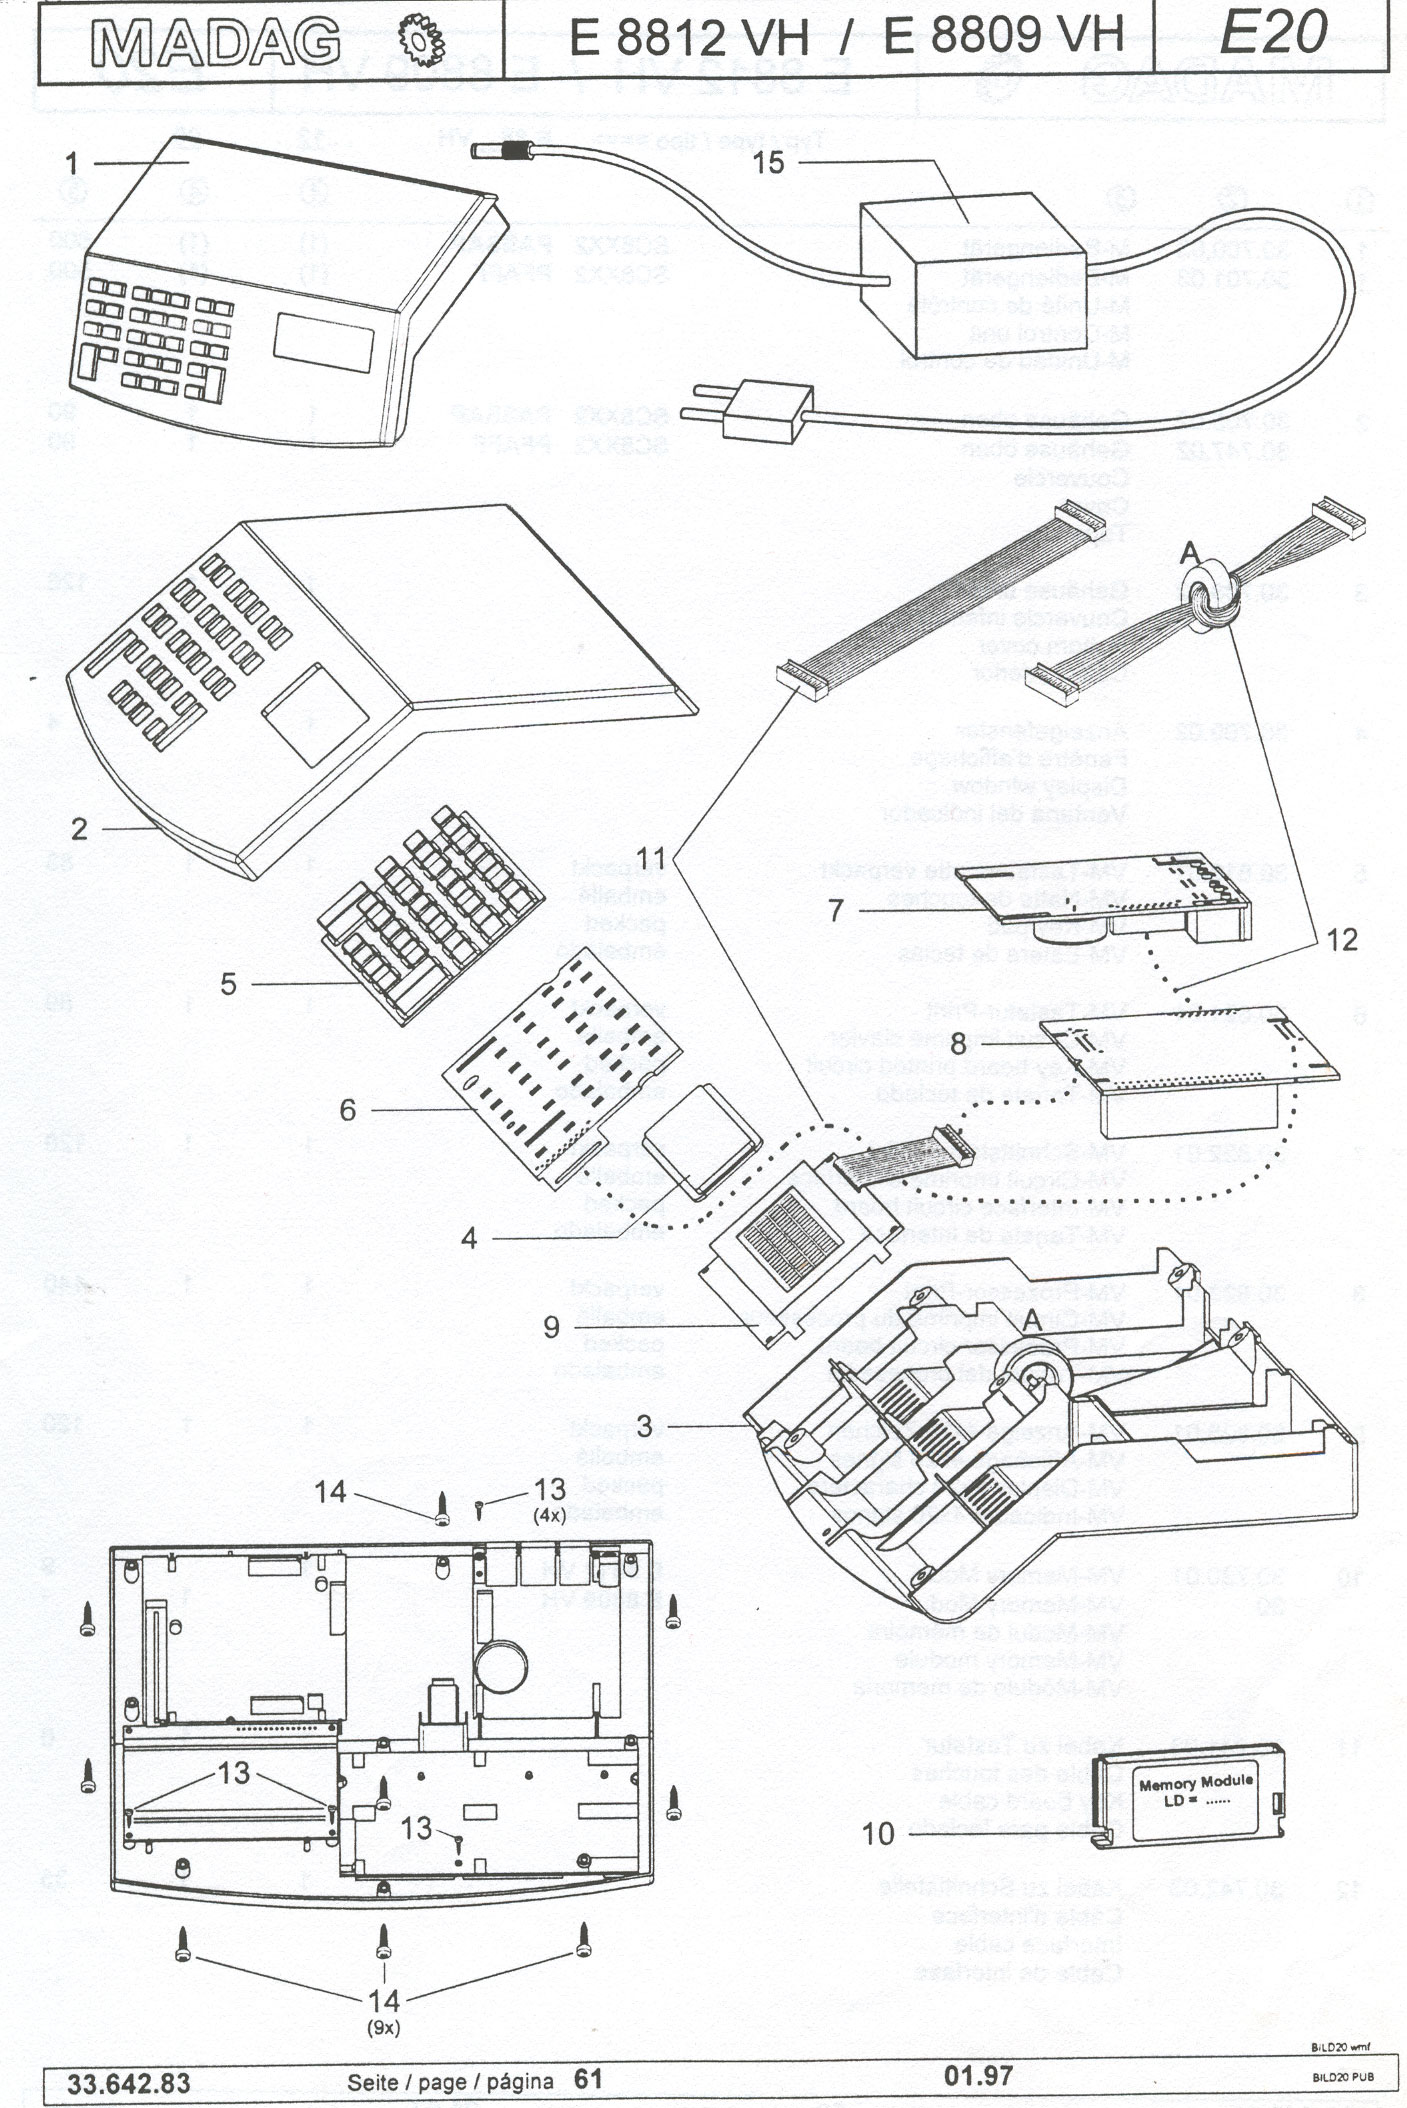 diagrams  u0026 numbers - e-8000 knitting beds  u0026 locks